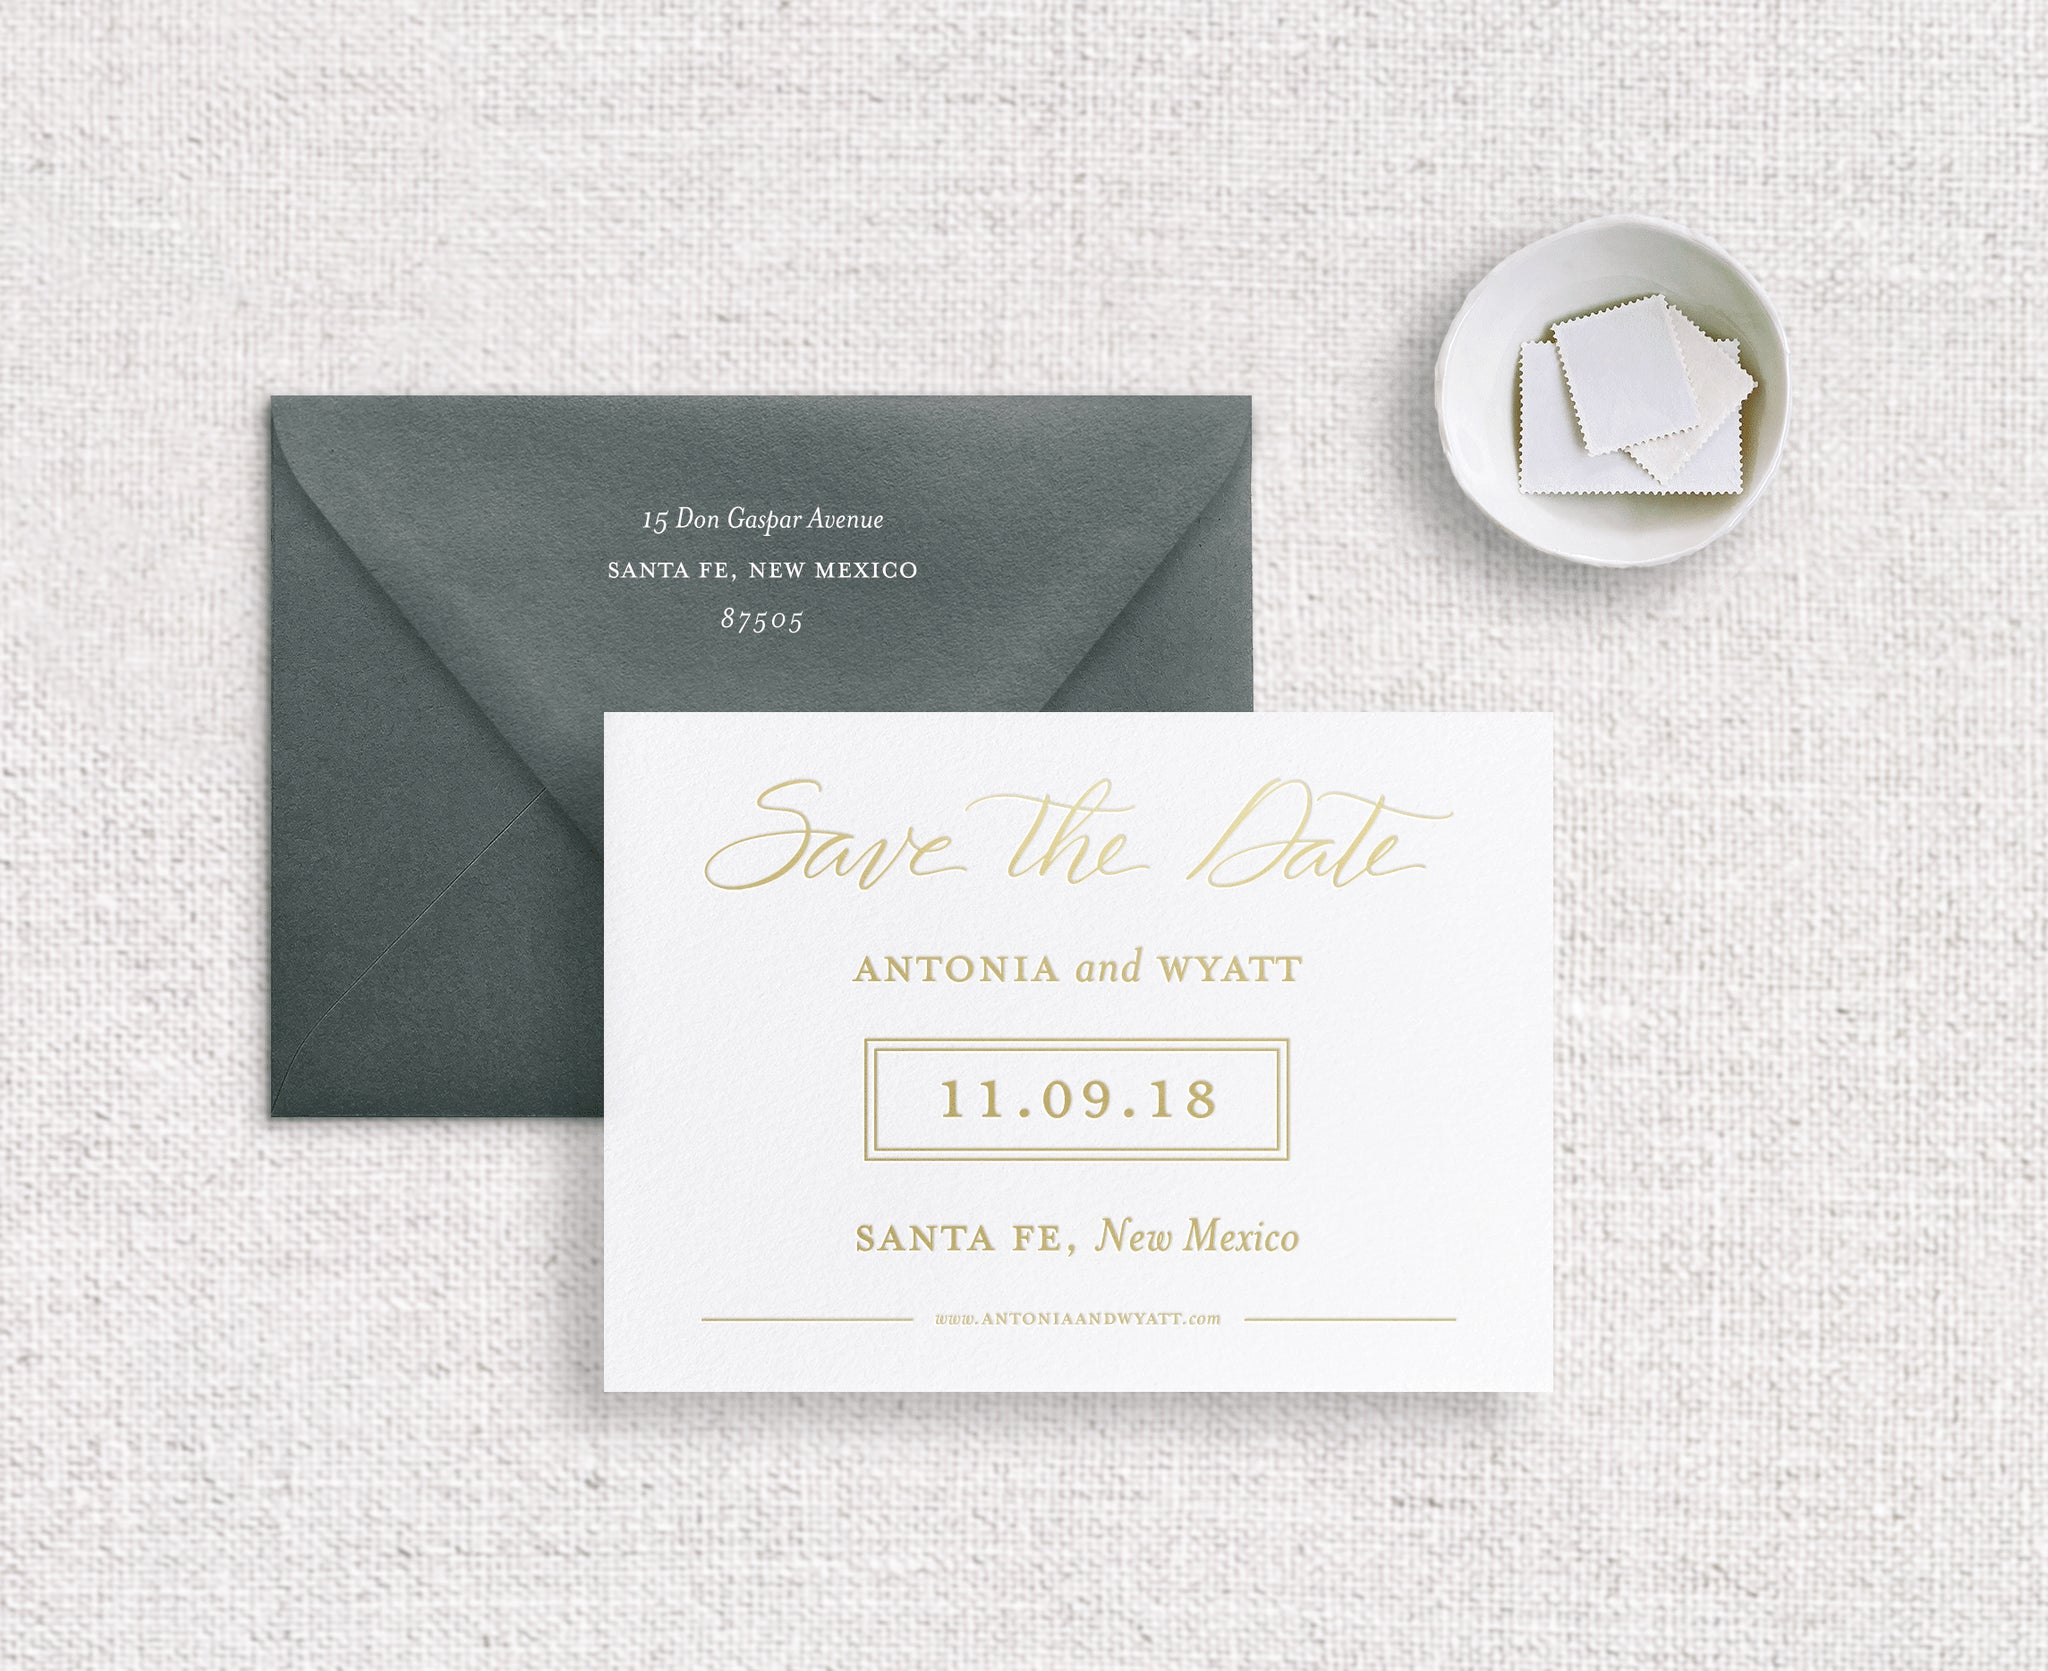 Antonia save the date foil stamped on white stock with champagne foil and racing green envelope digitally printed with white ink